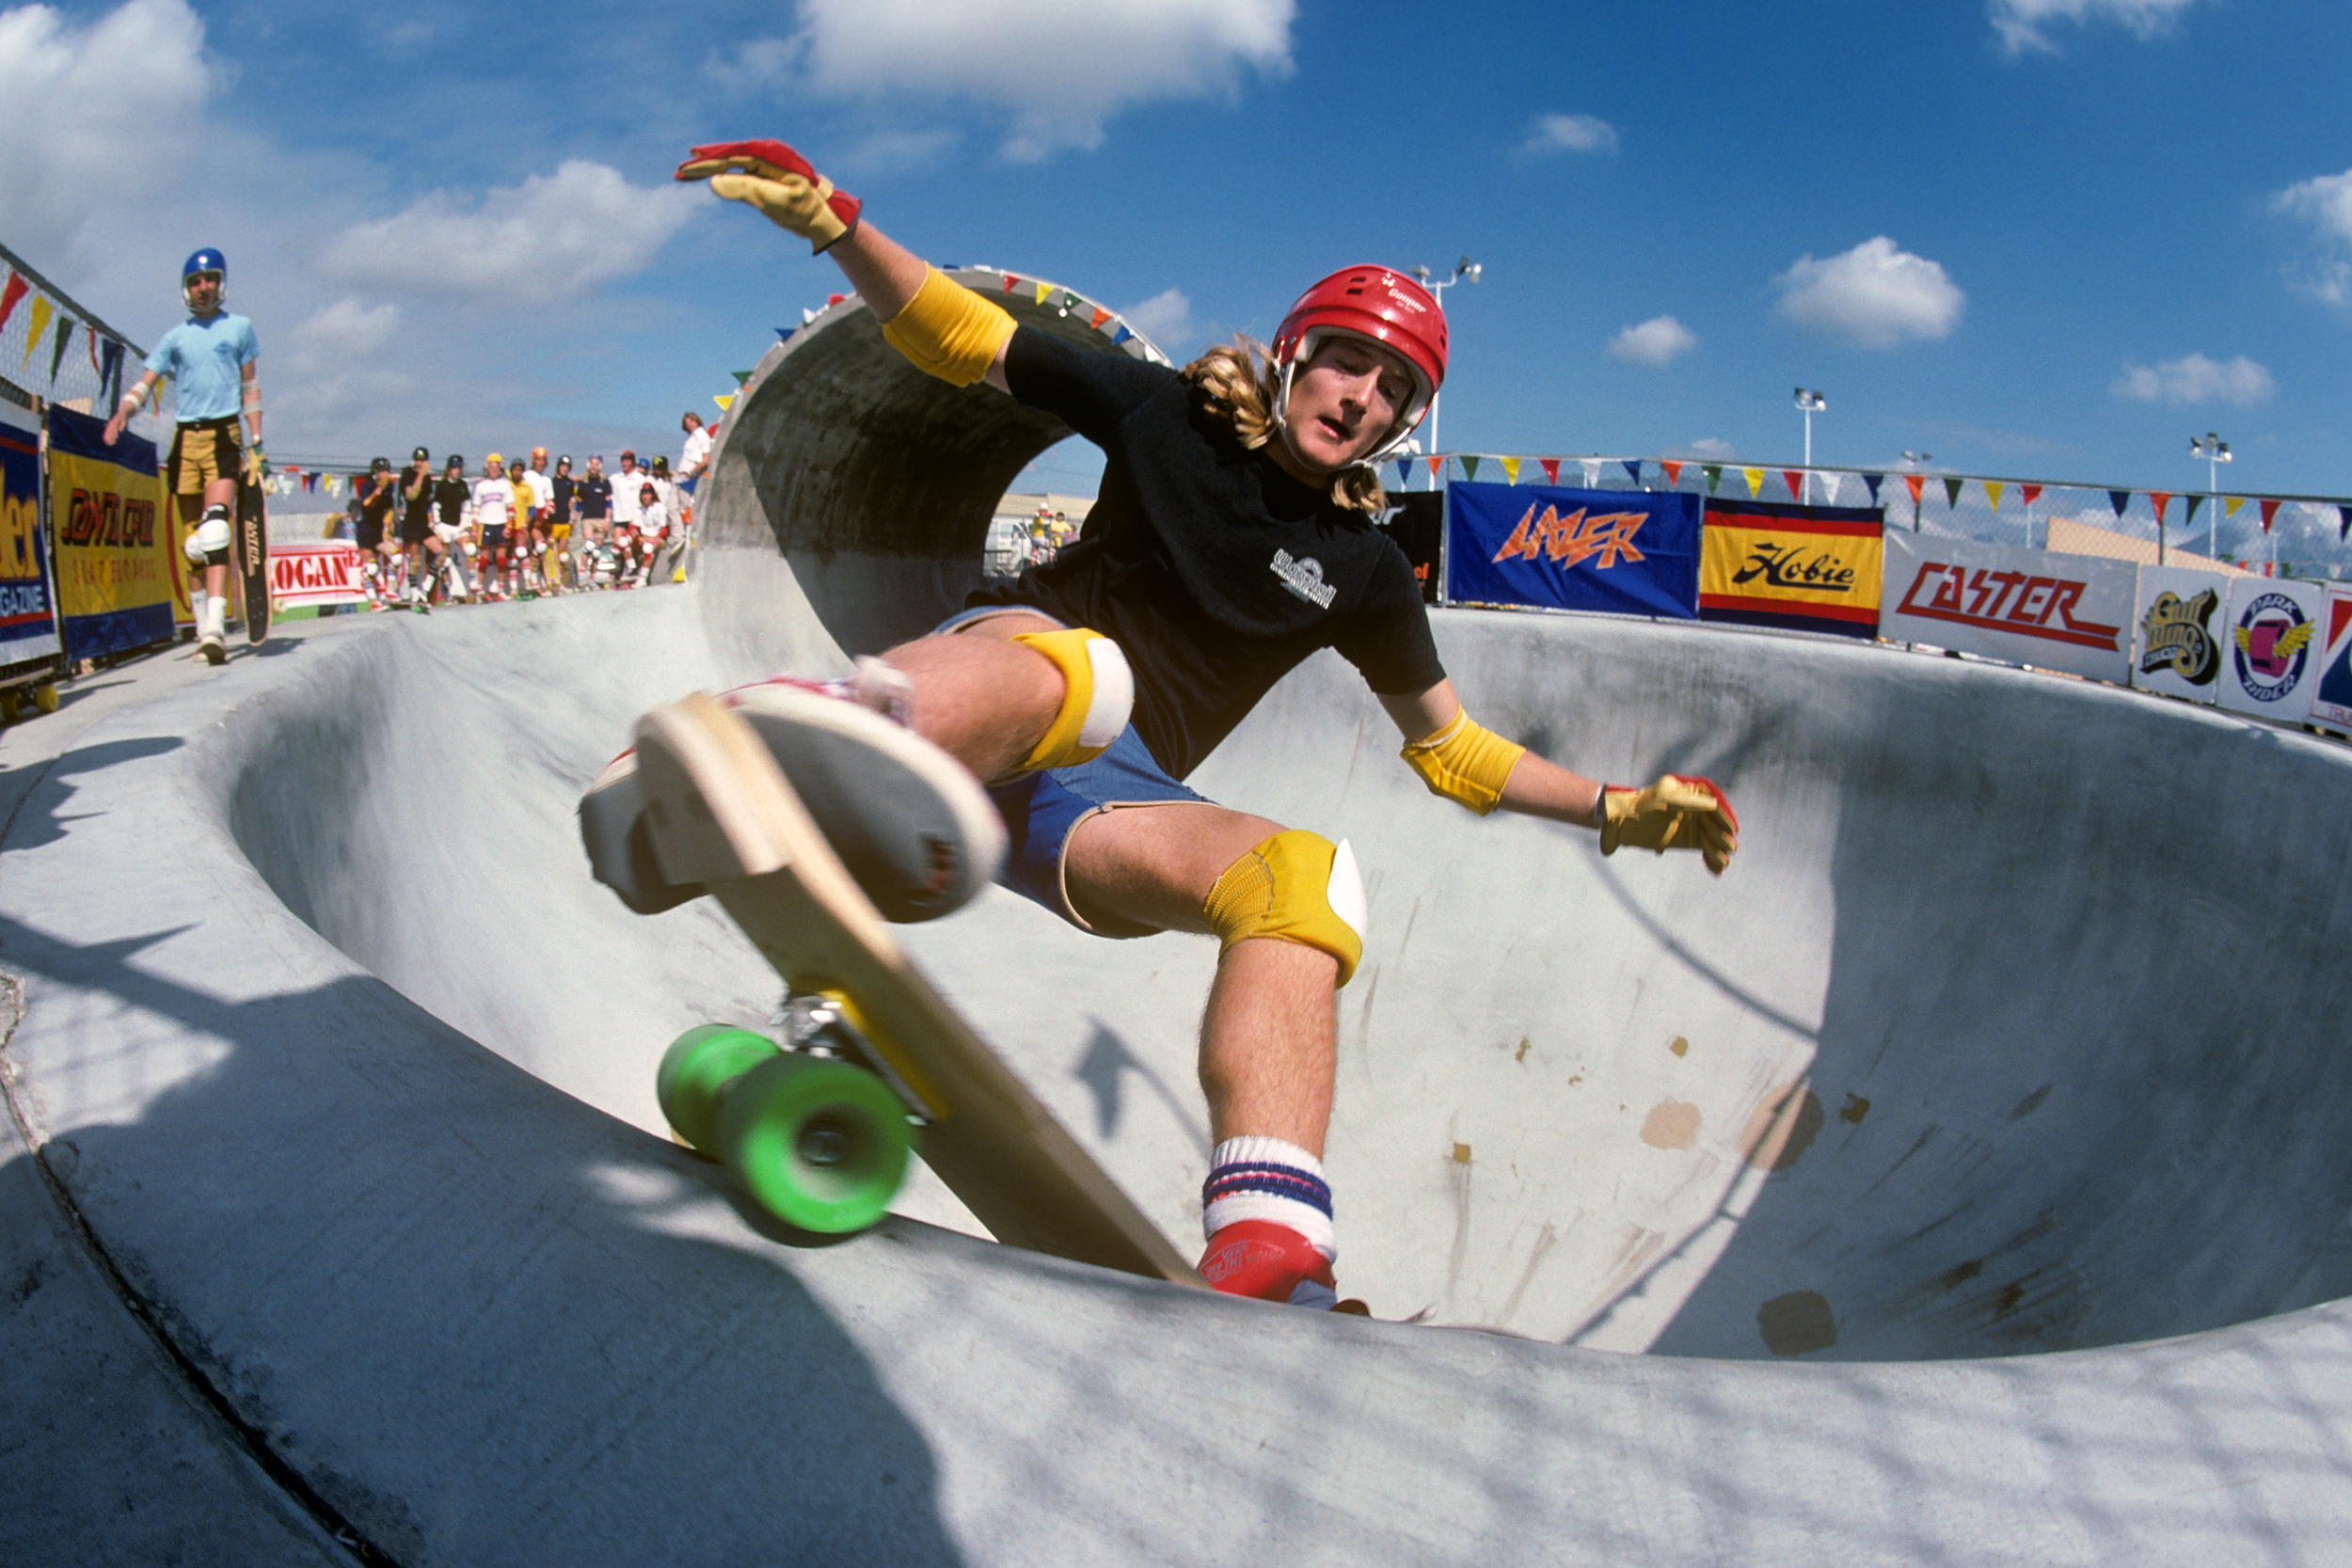 Stacy Peralta_Upland_apr-1978.jpg